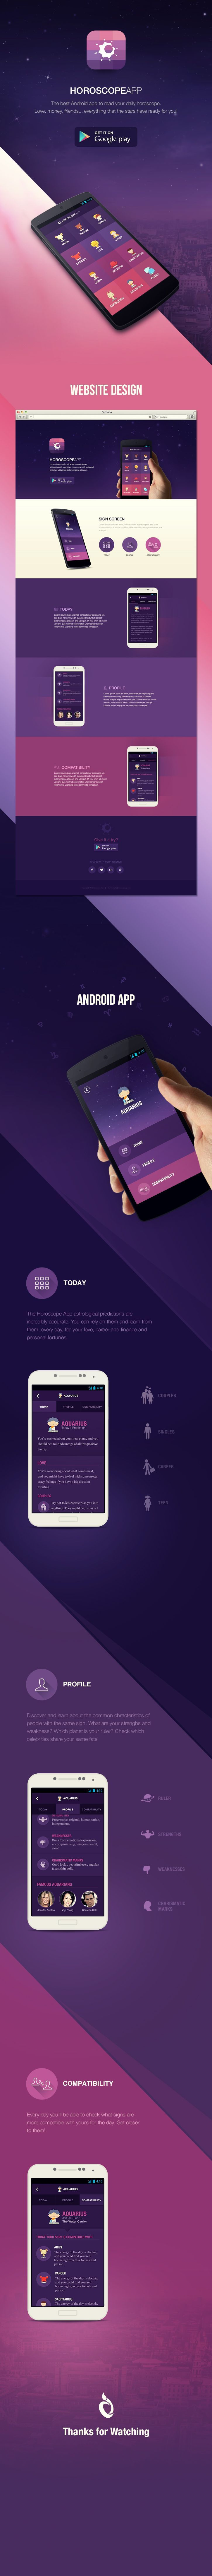 Android Horoscope App UI Design by Reznik Umar, BTW Download cool app(s) here: http://www.imobileappsys.com/promote/tryapps.php?id=pinterest